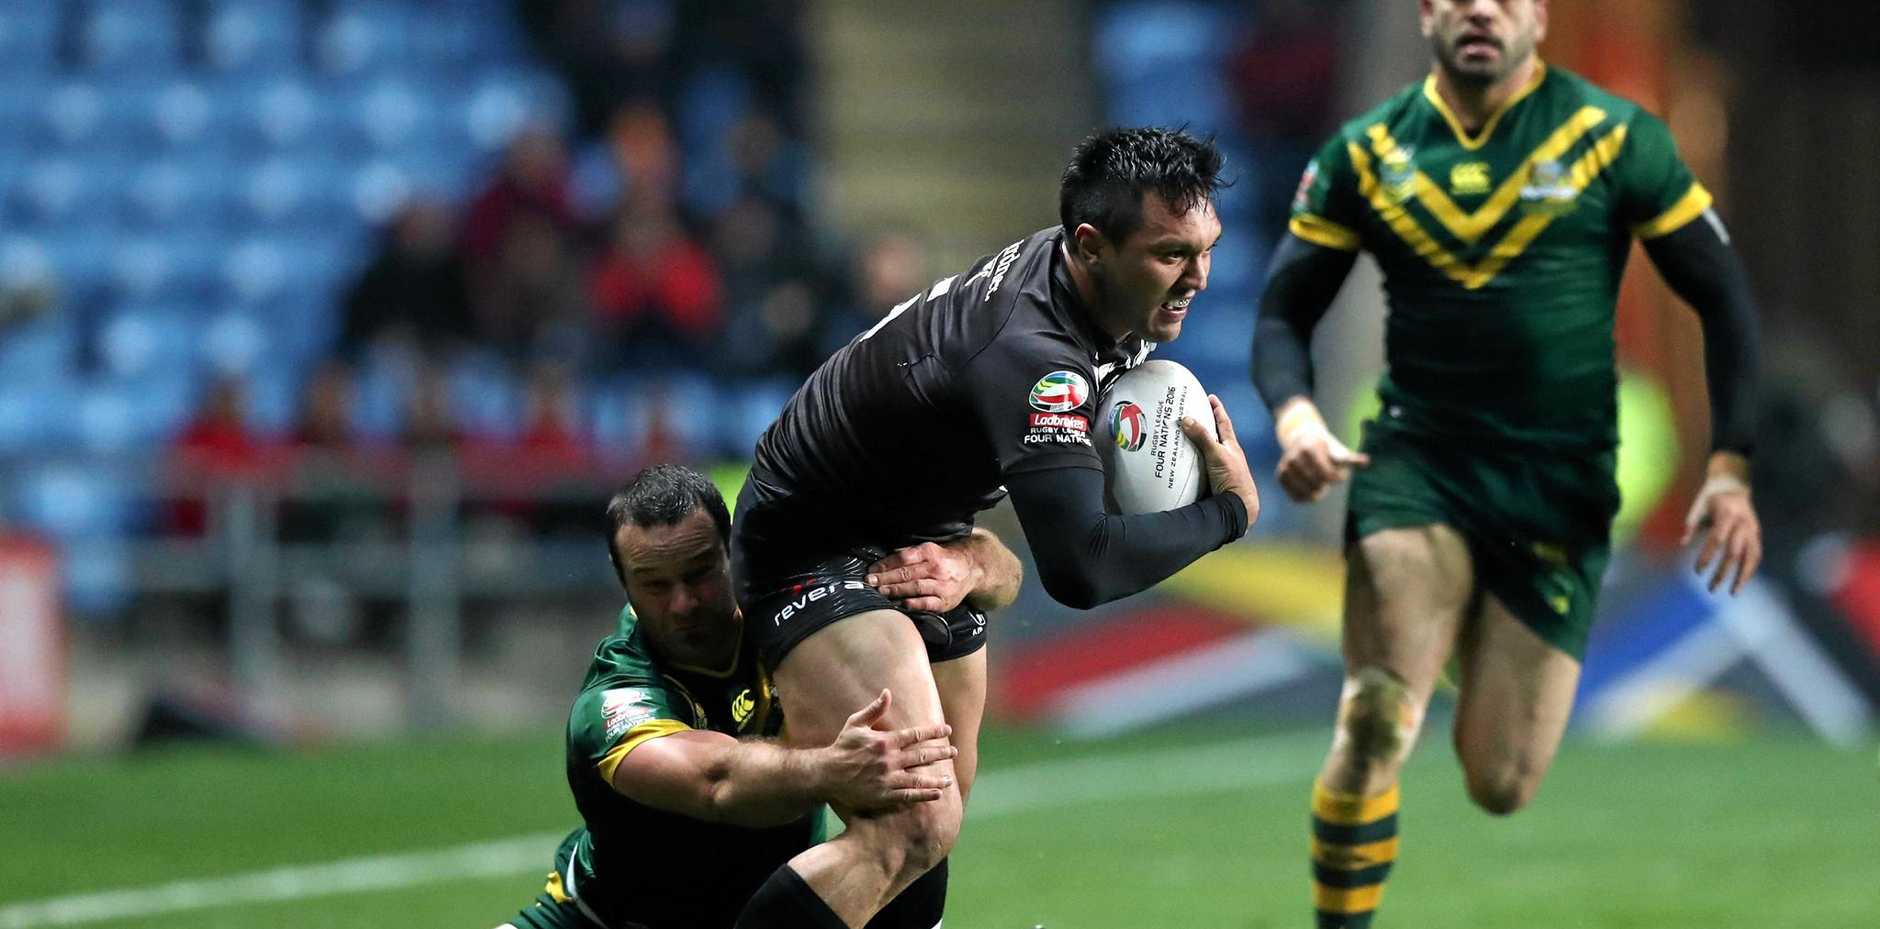 New Zealand's Jordan Rapana is brought down by Australia's Boyd Cordner during their Four Nations rugby league match at the Ricoh Arena, Coventry.